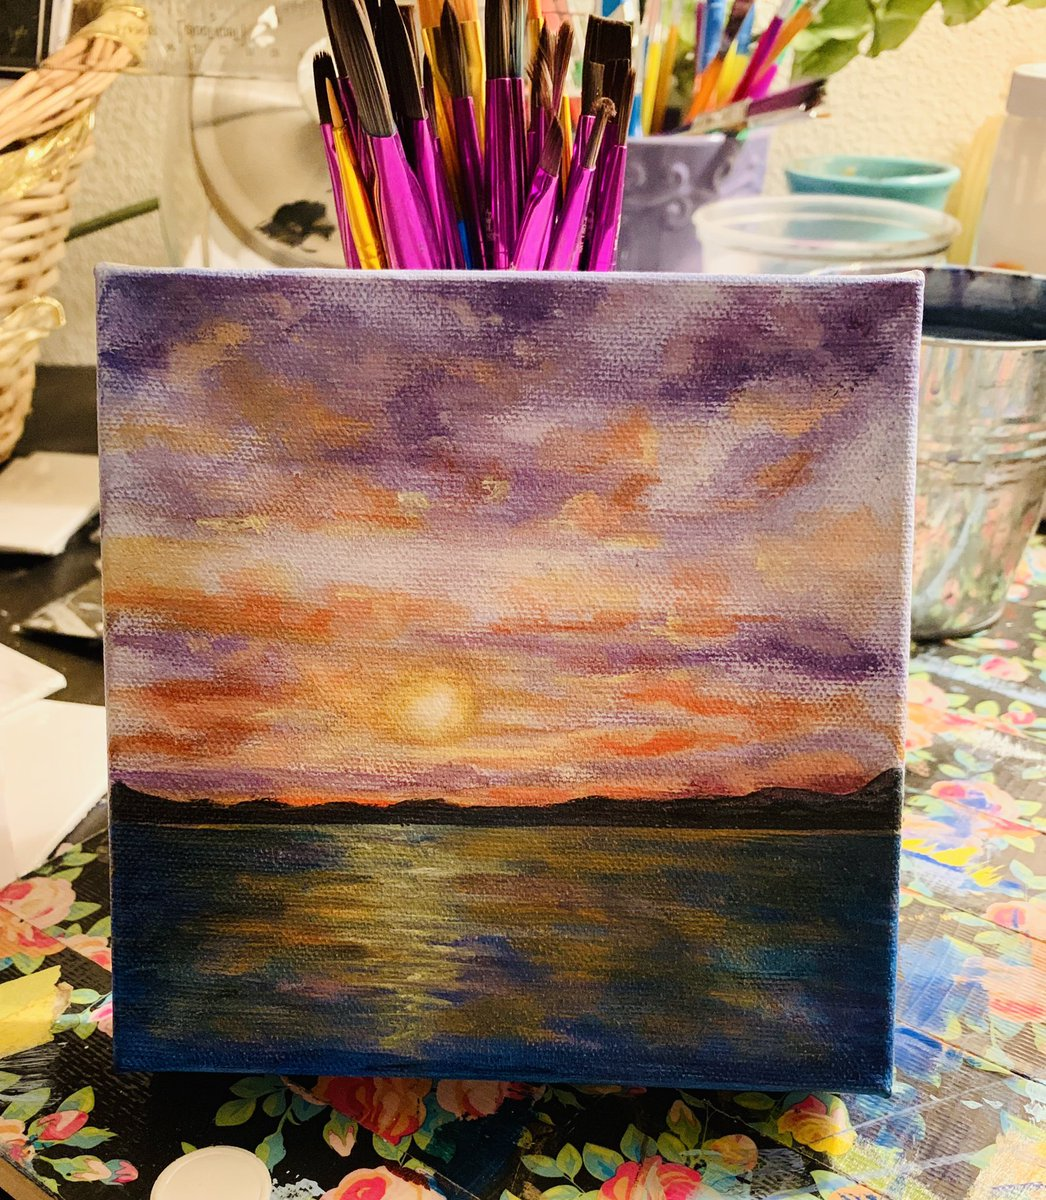 Queen Gardner On Twitter 6x6 Ocean Sunset Painting Queenshyart Queenofart Ocean Sunset Acrylic Art Artists Artwork Queen Painting Ocean Sunset Purple Pink Sea Sky Clouds Homedecor Gallery Arte Drawings Sketchbook